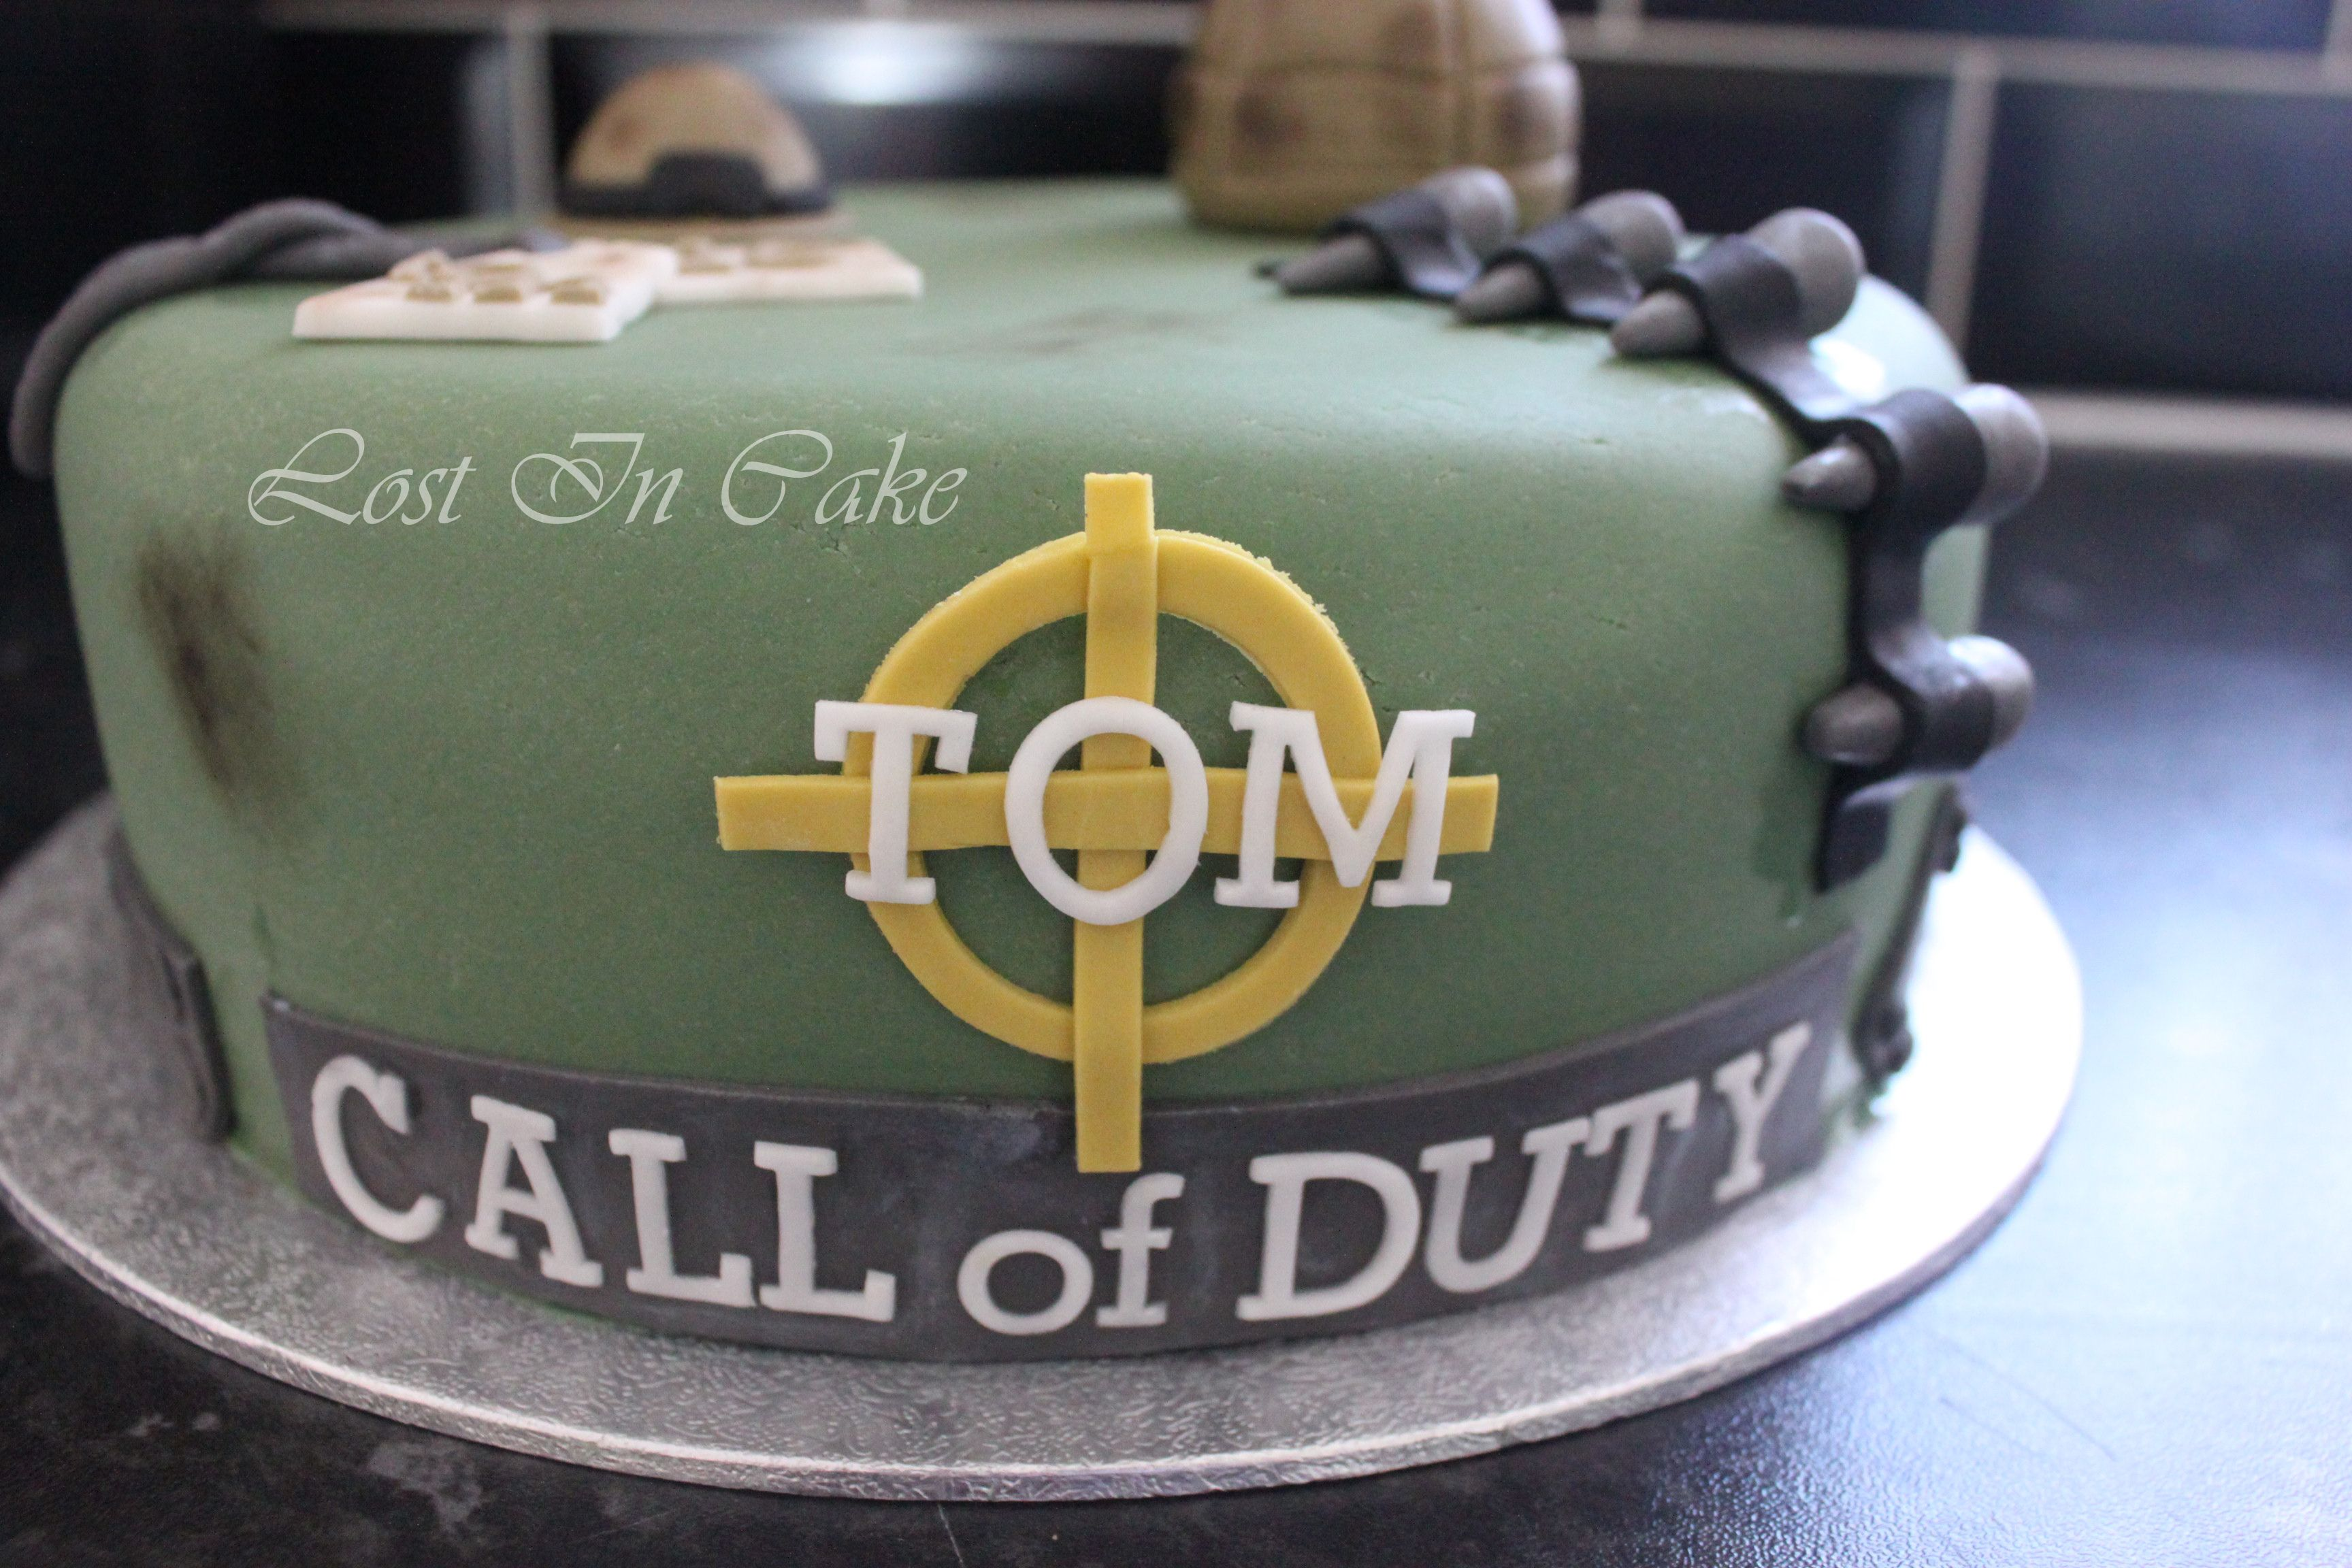 Call Of Duty Cake - Front Detail